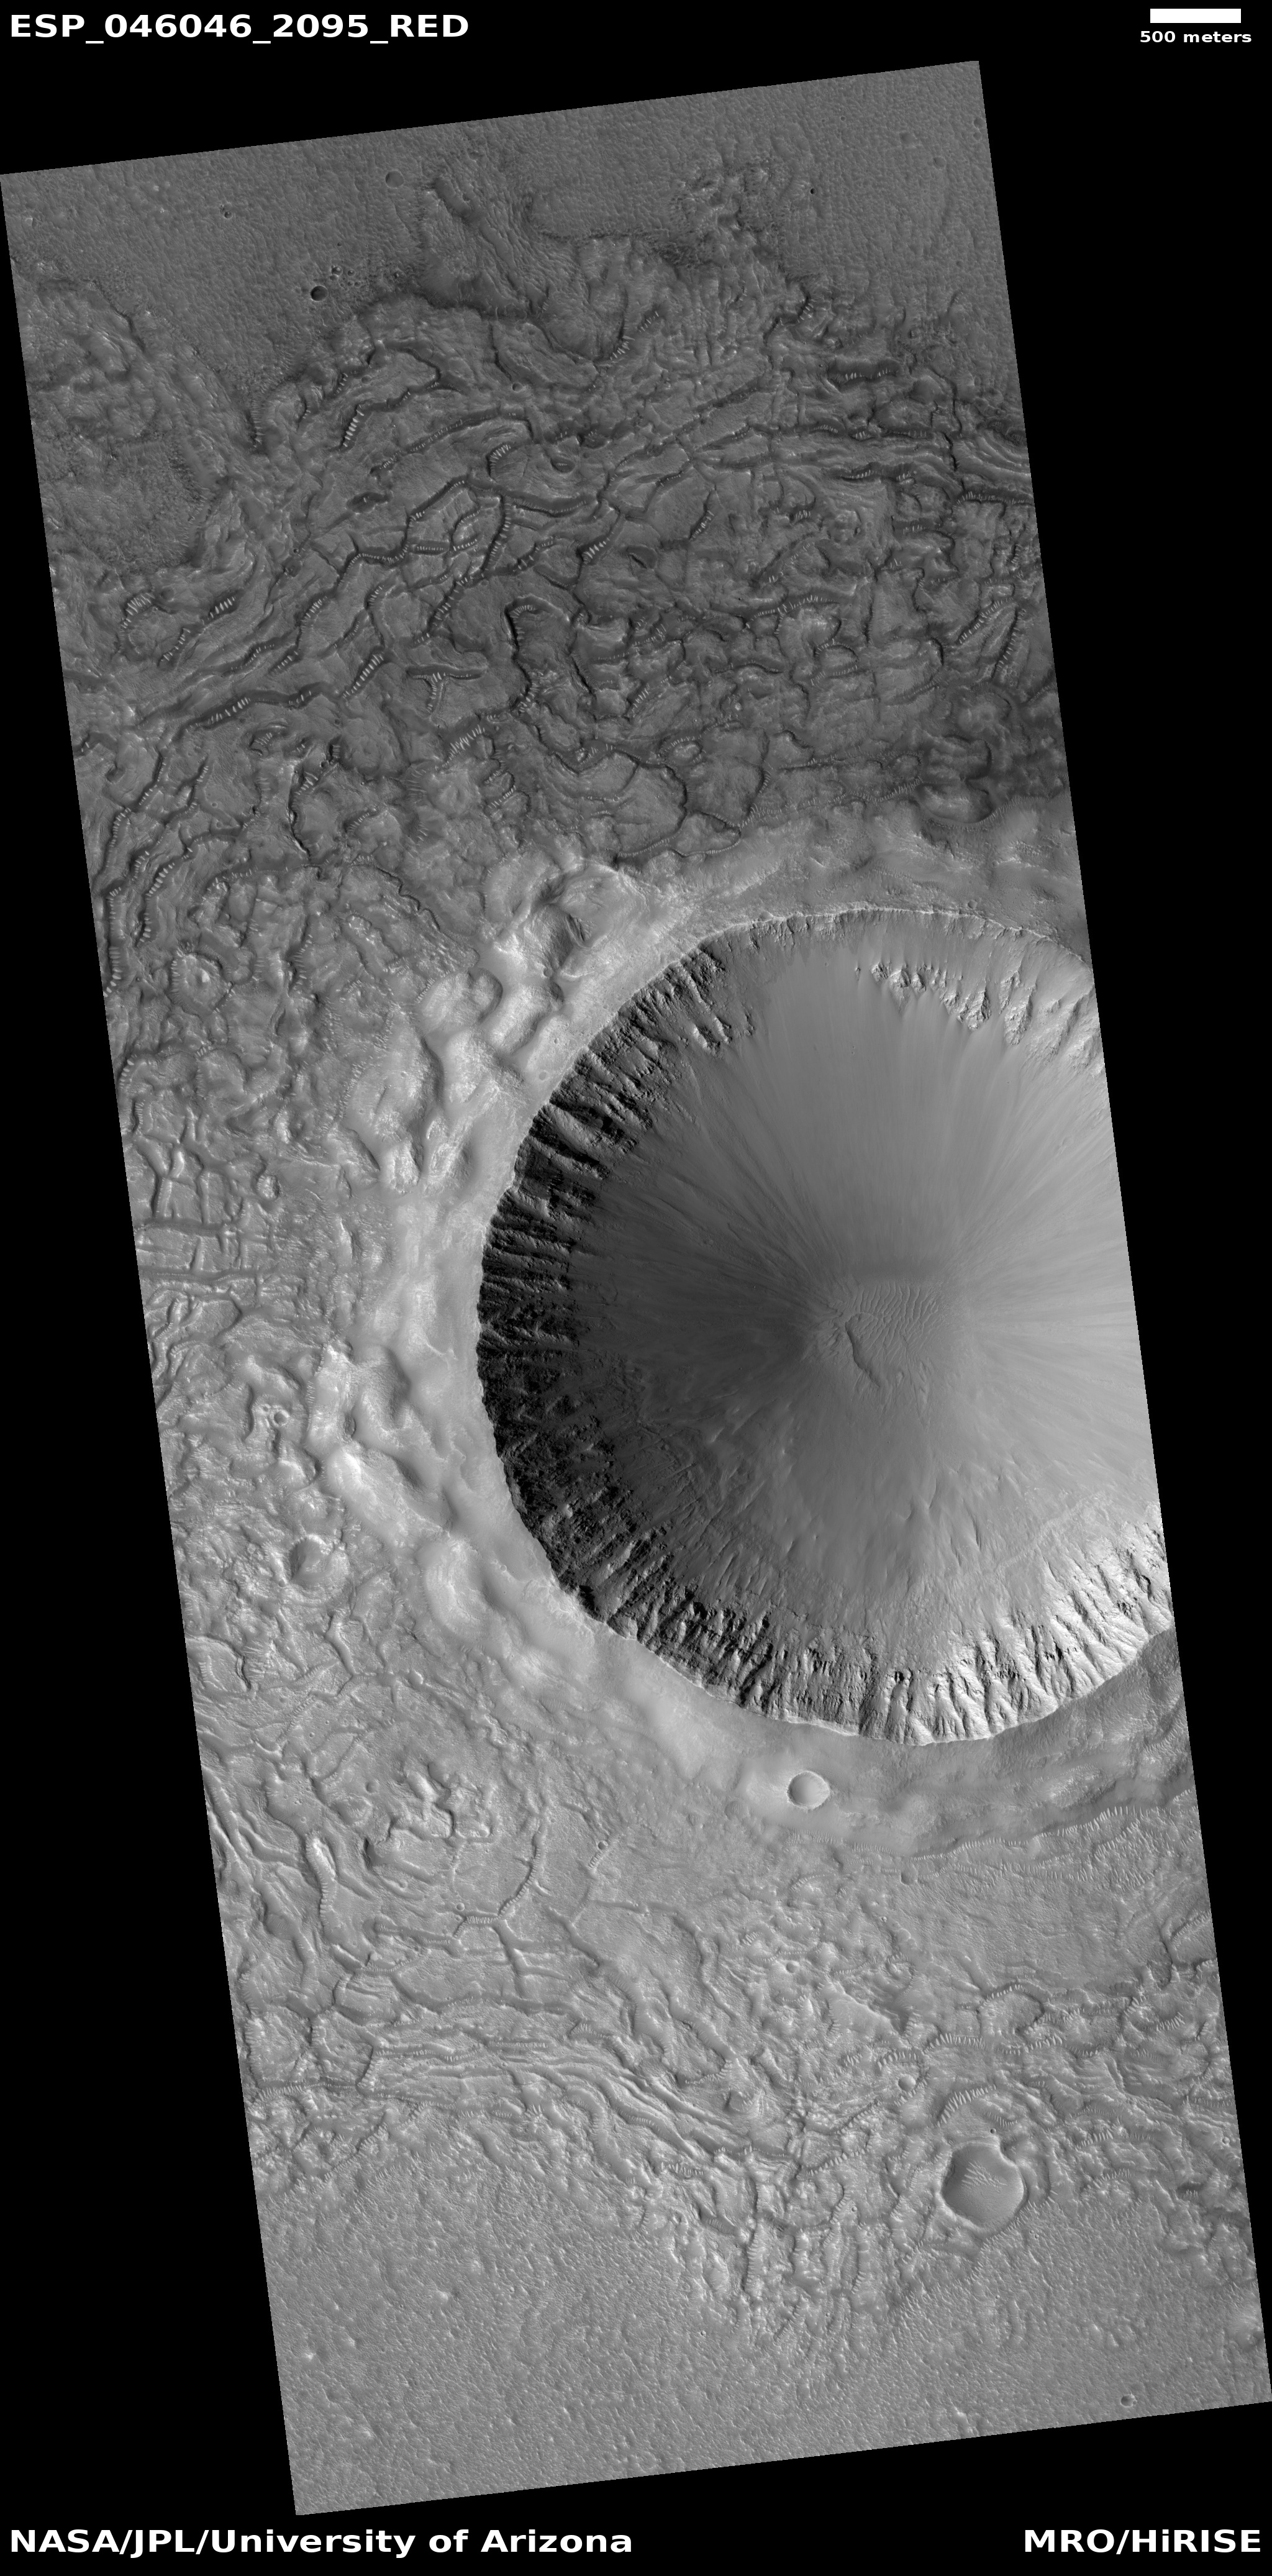 This is a fairly young crater as it still shows ejecta, layers, and a rim.